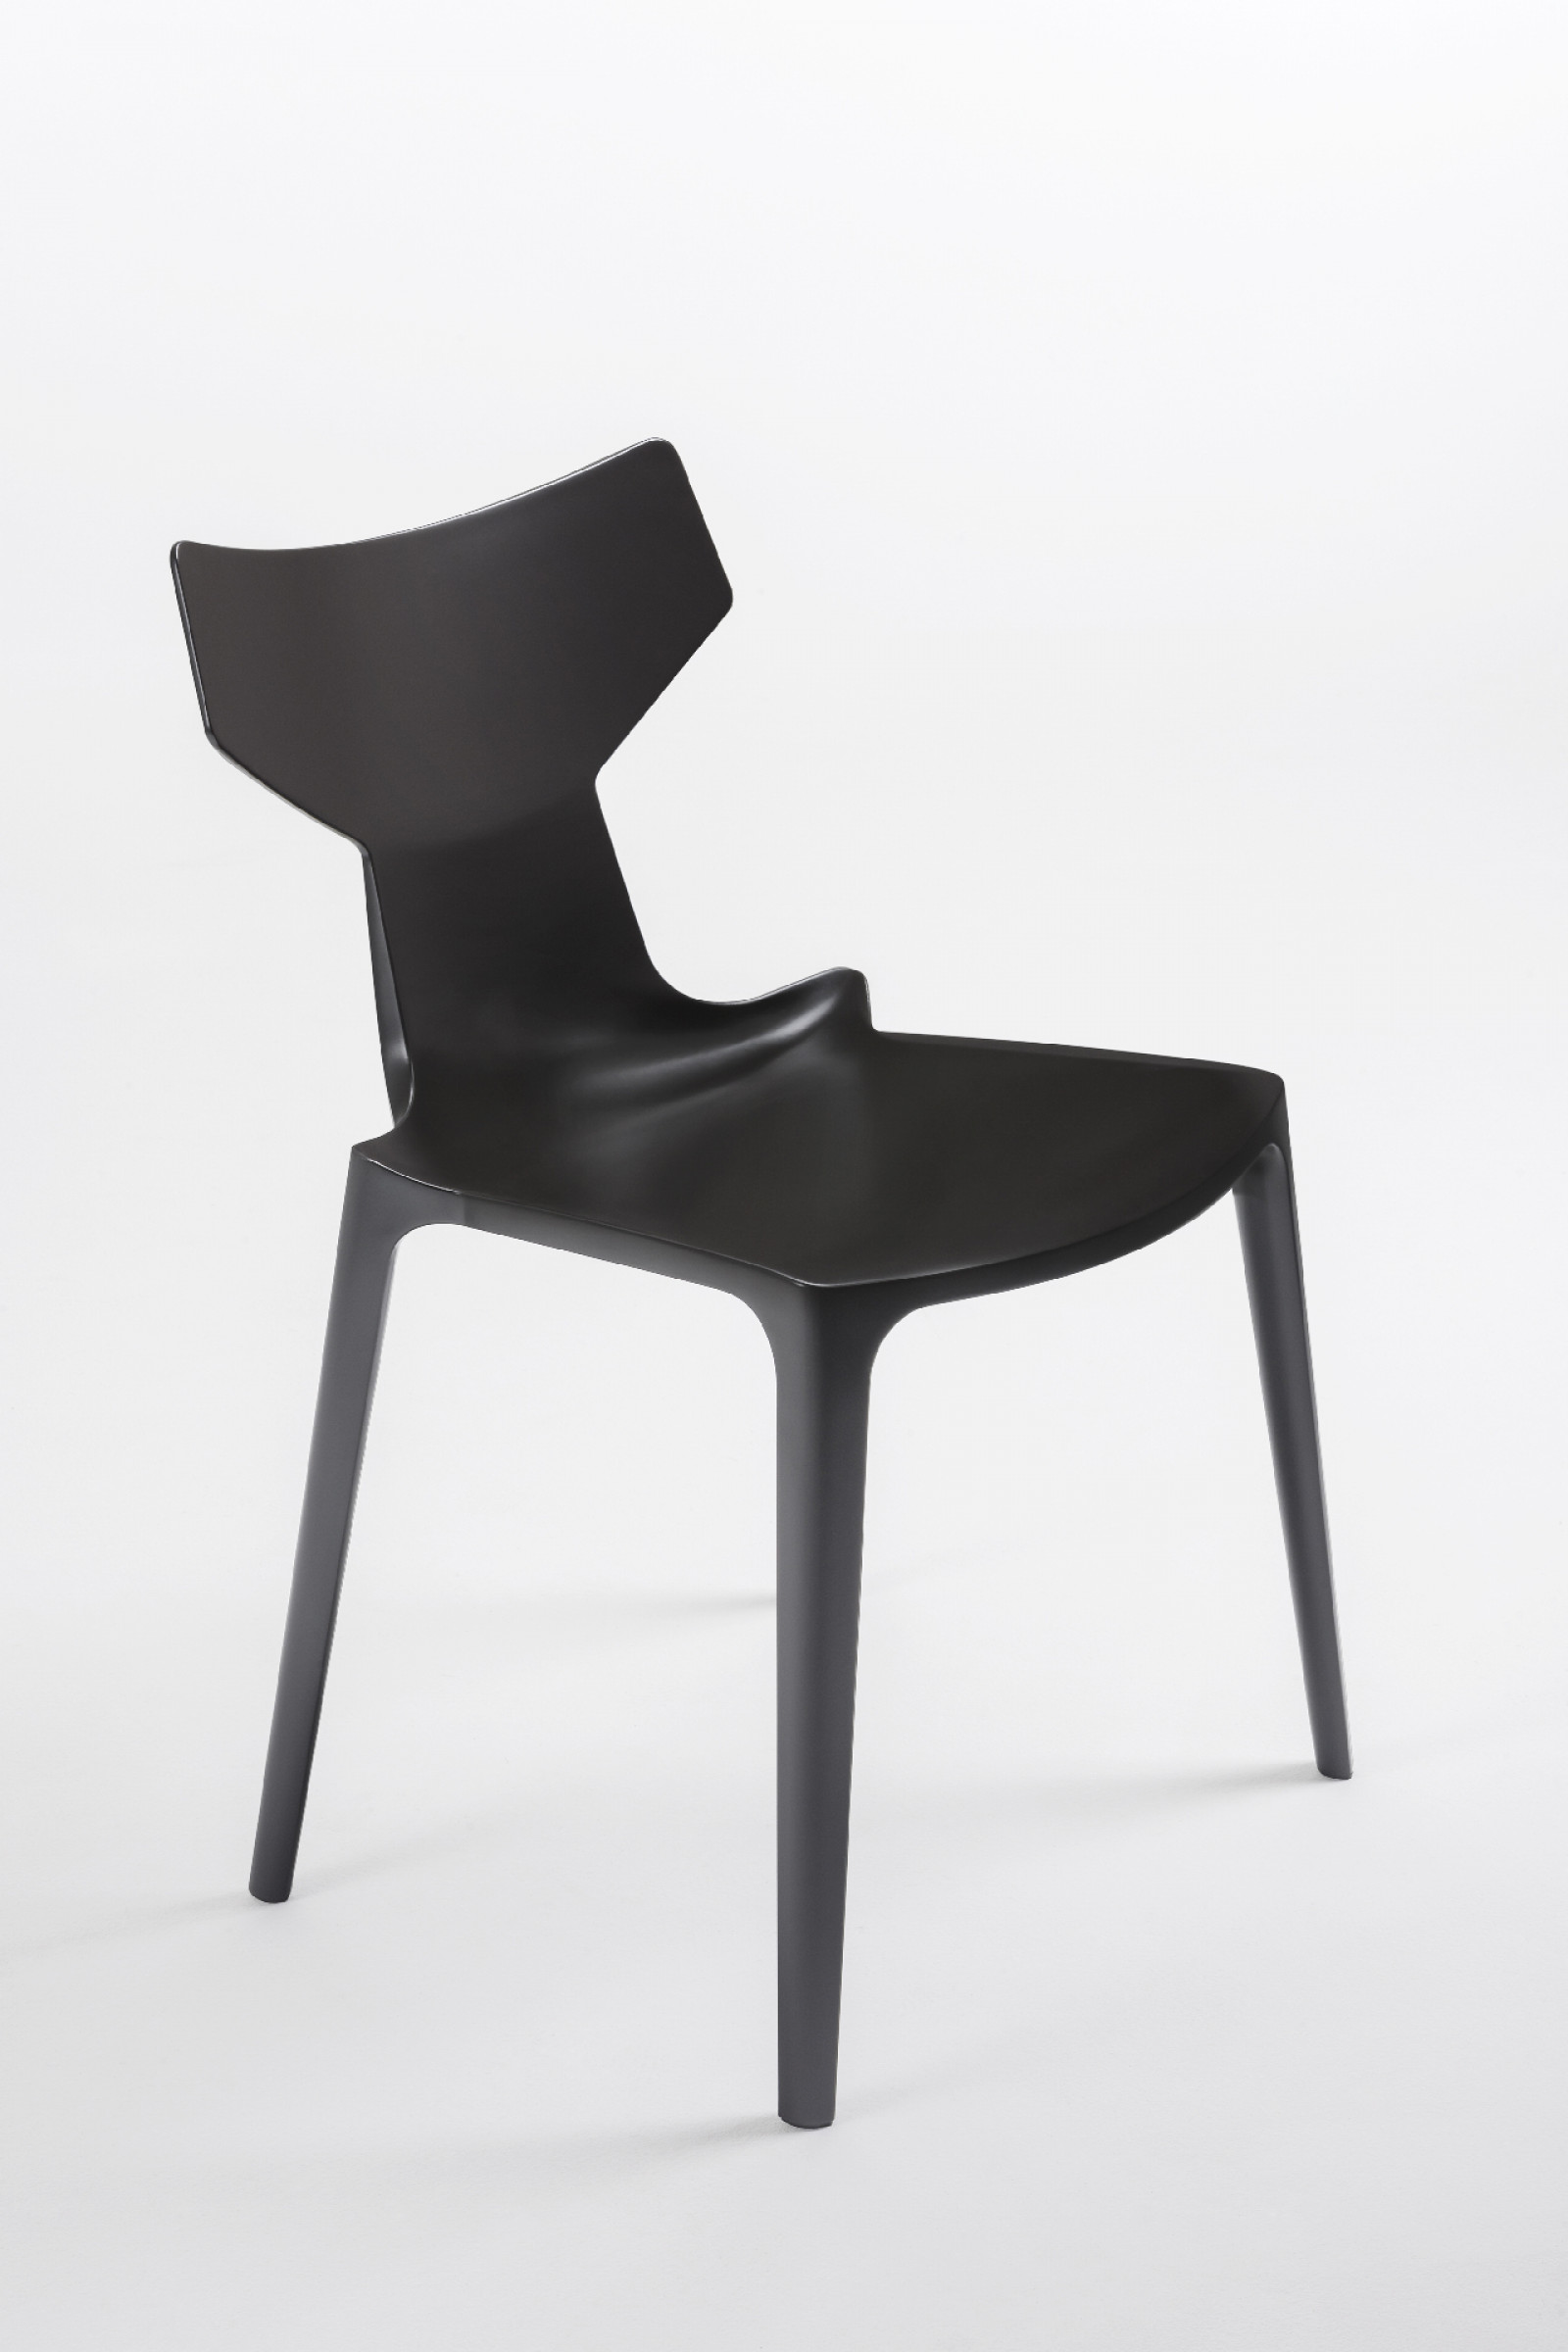 design chair kartell covers for parties to buy bio by antonio citterio contamination